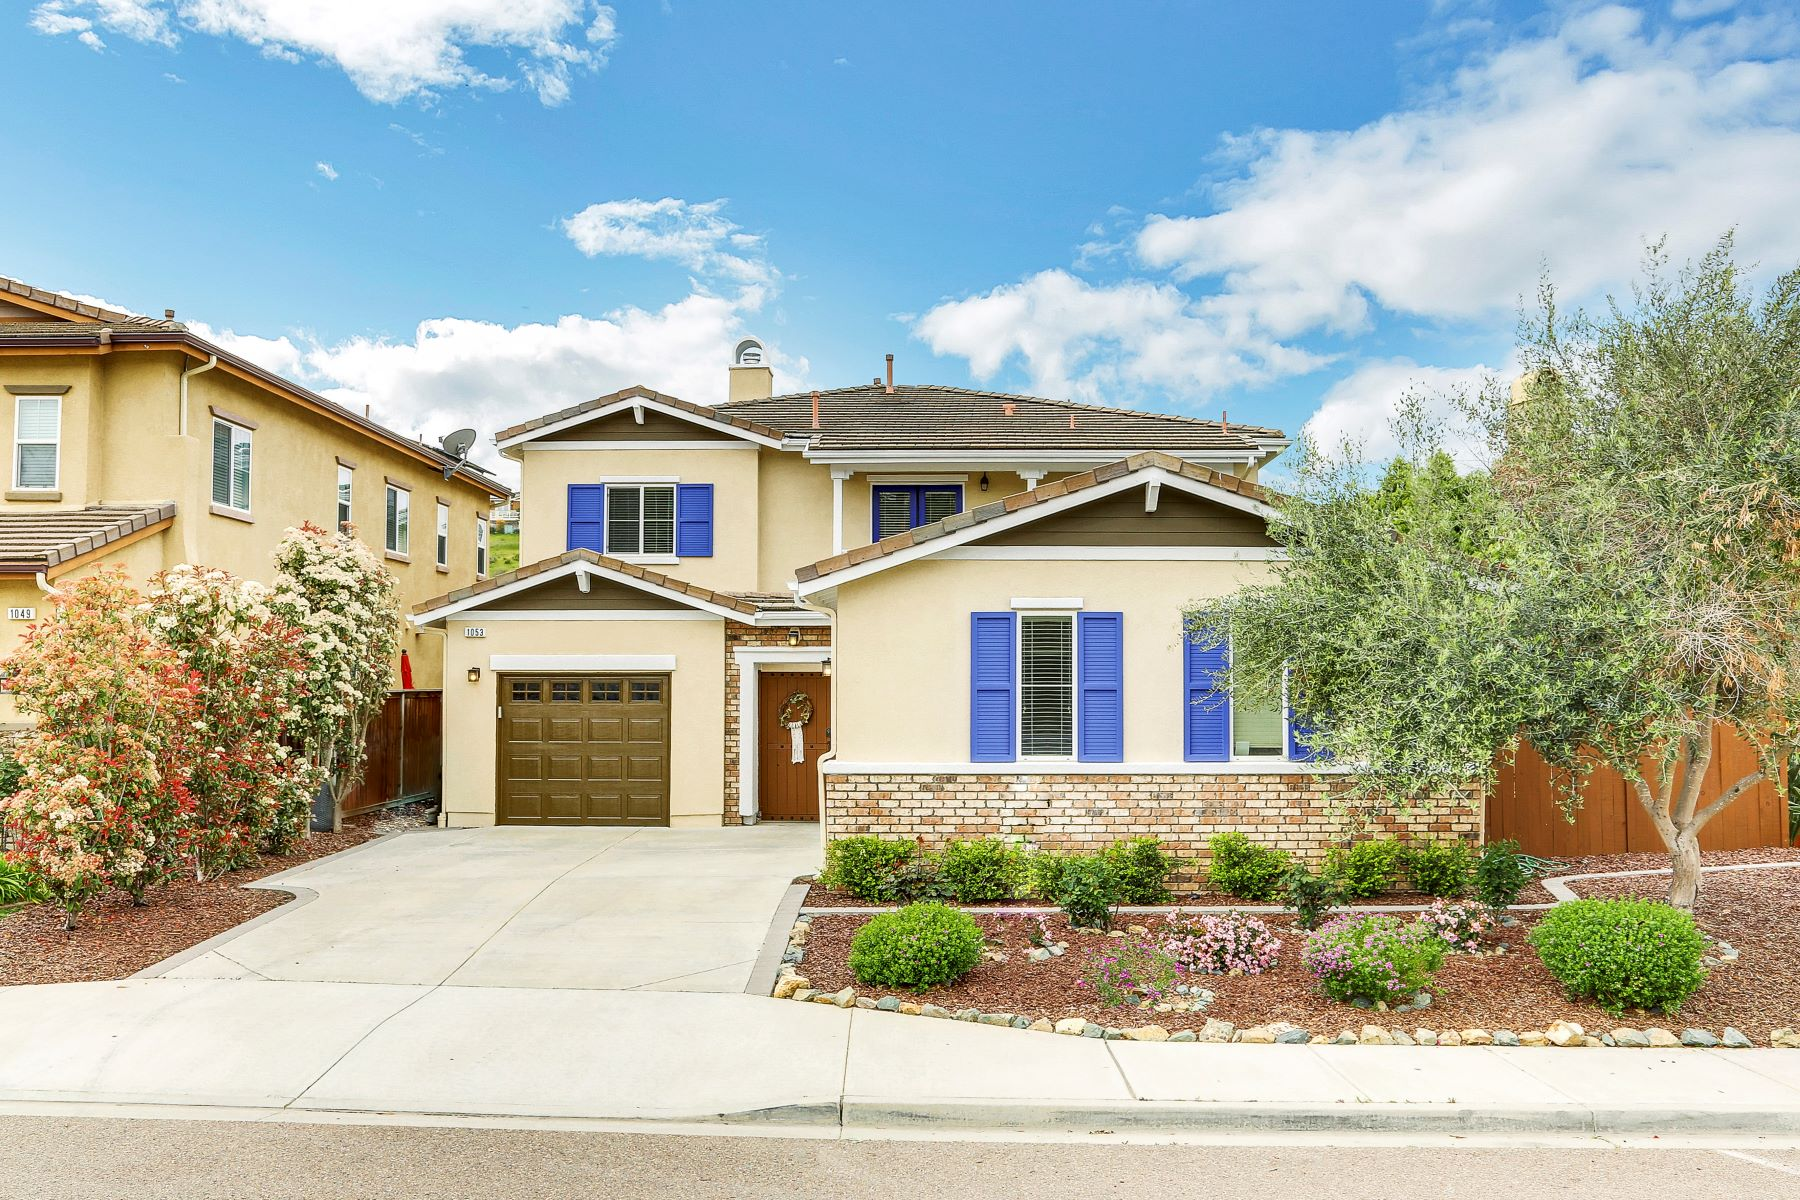 Single Family Homes for Active at 1053 Brightwood Drive 1053 Brightwood Dr. San Marcos, California 92078 United States